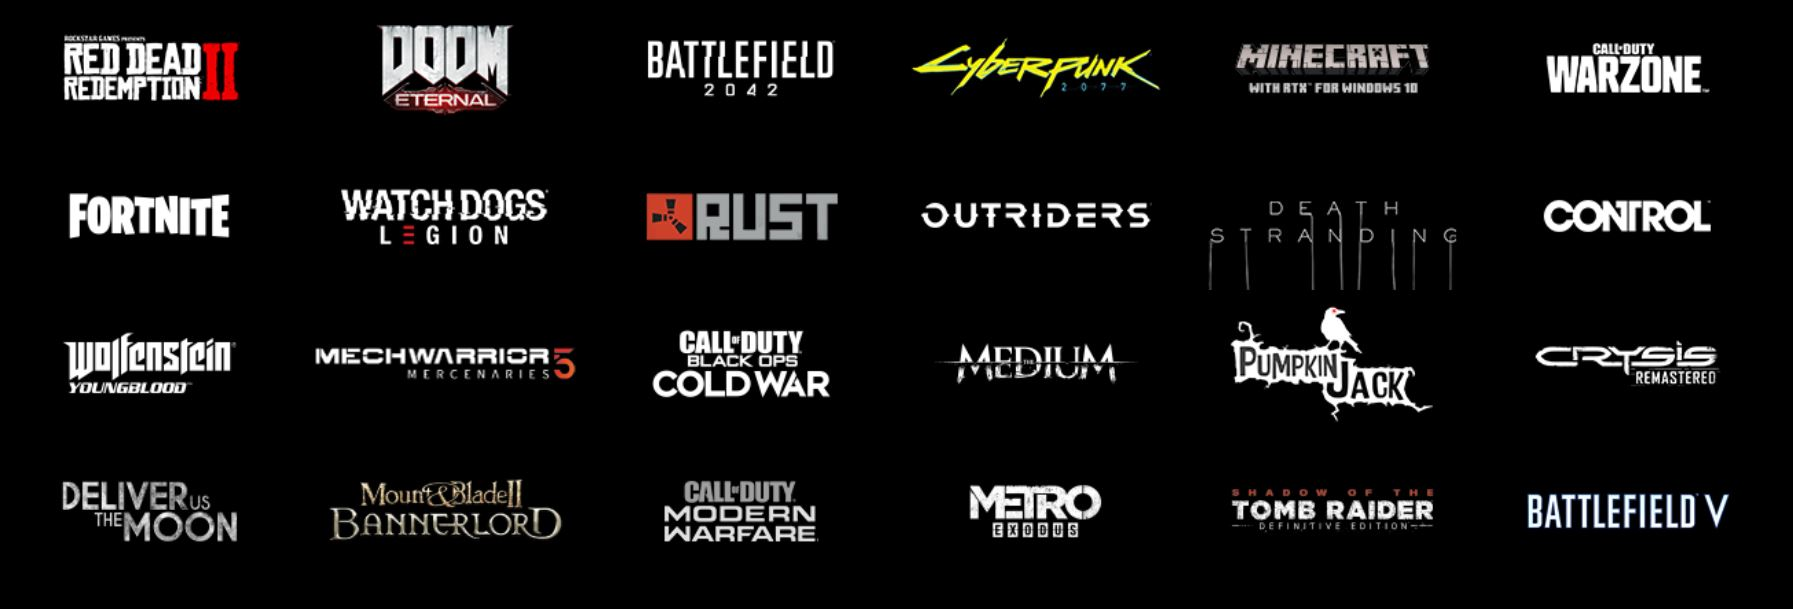 PC games compatible with DLSS